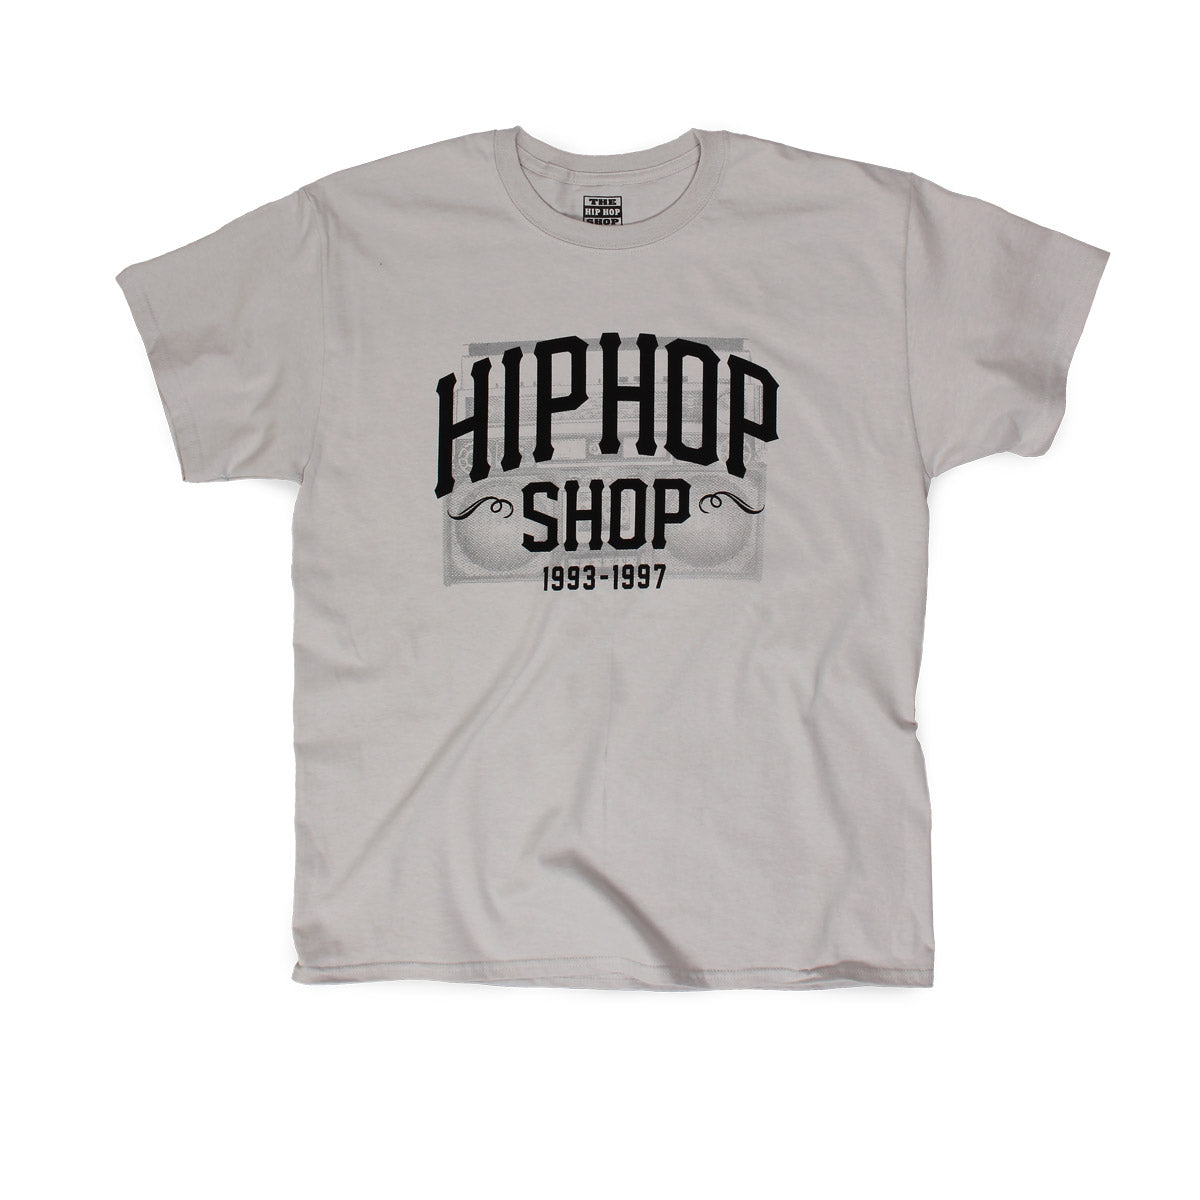 The Hip Hop Shop radio logo gray t-shirt